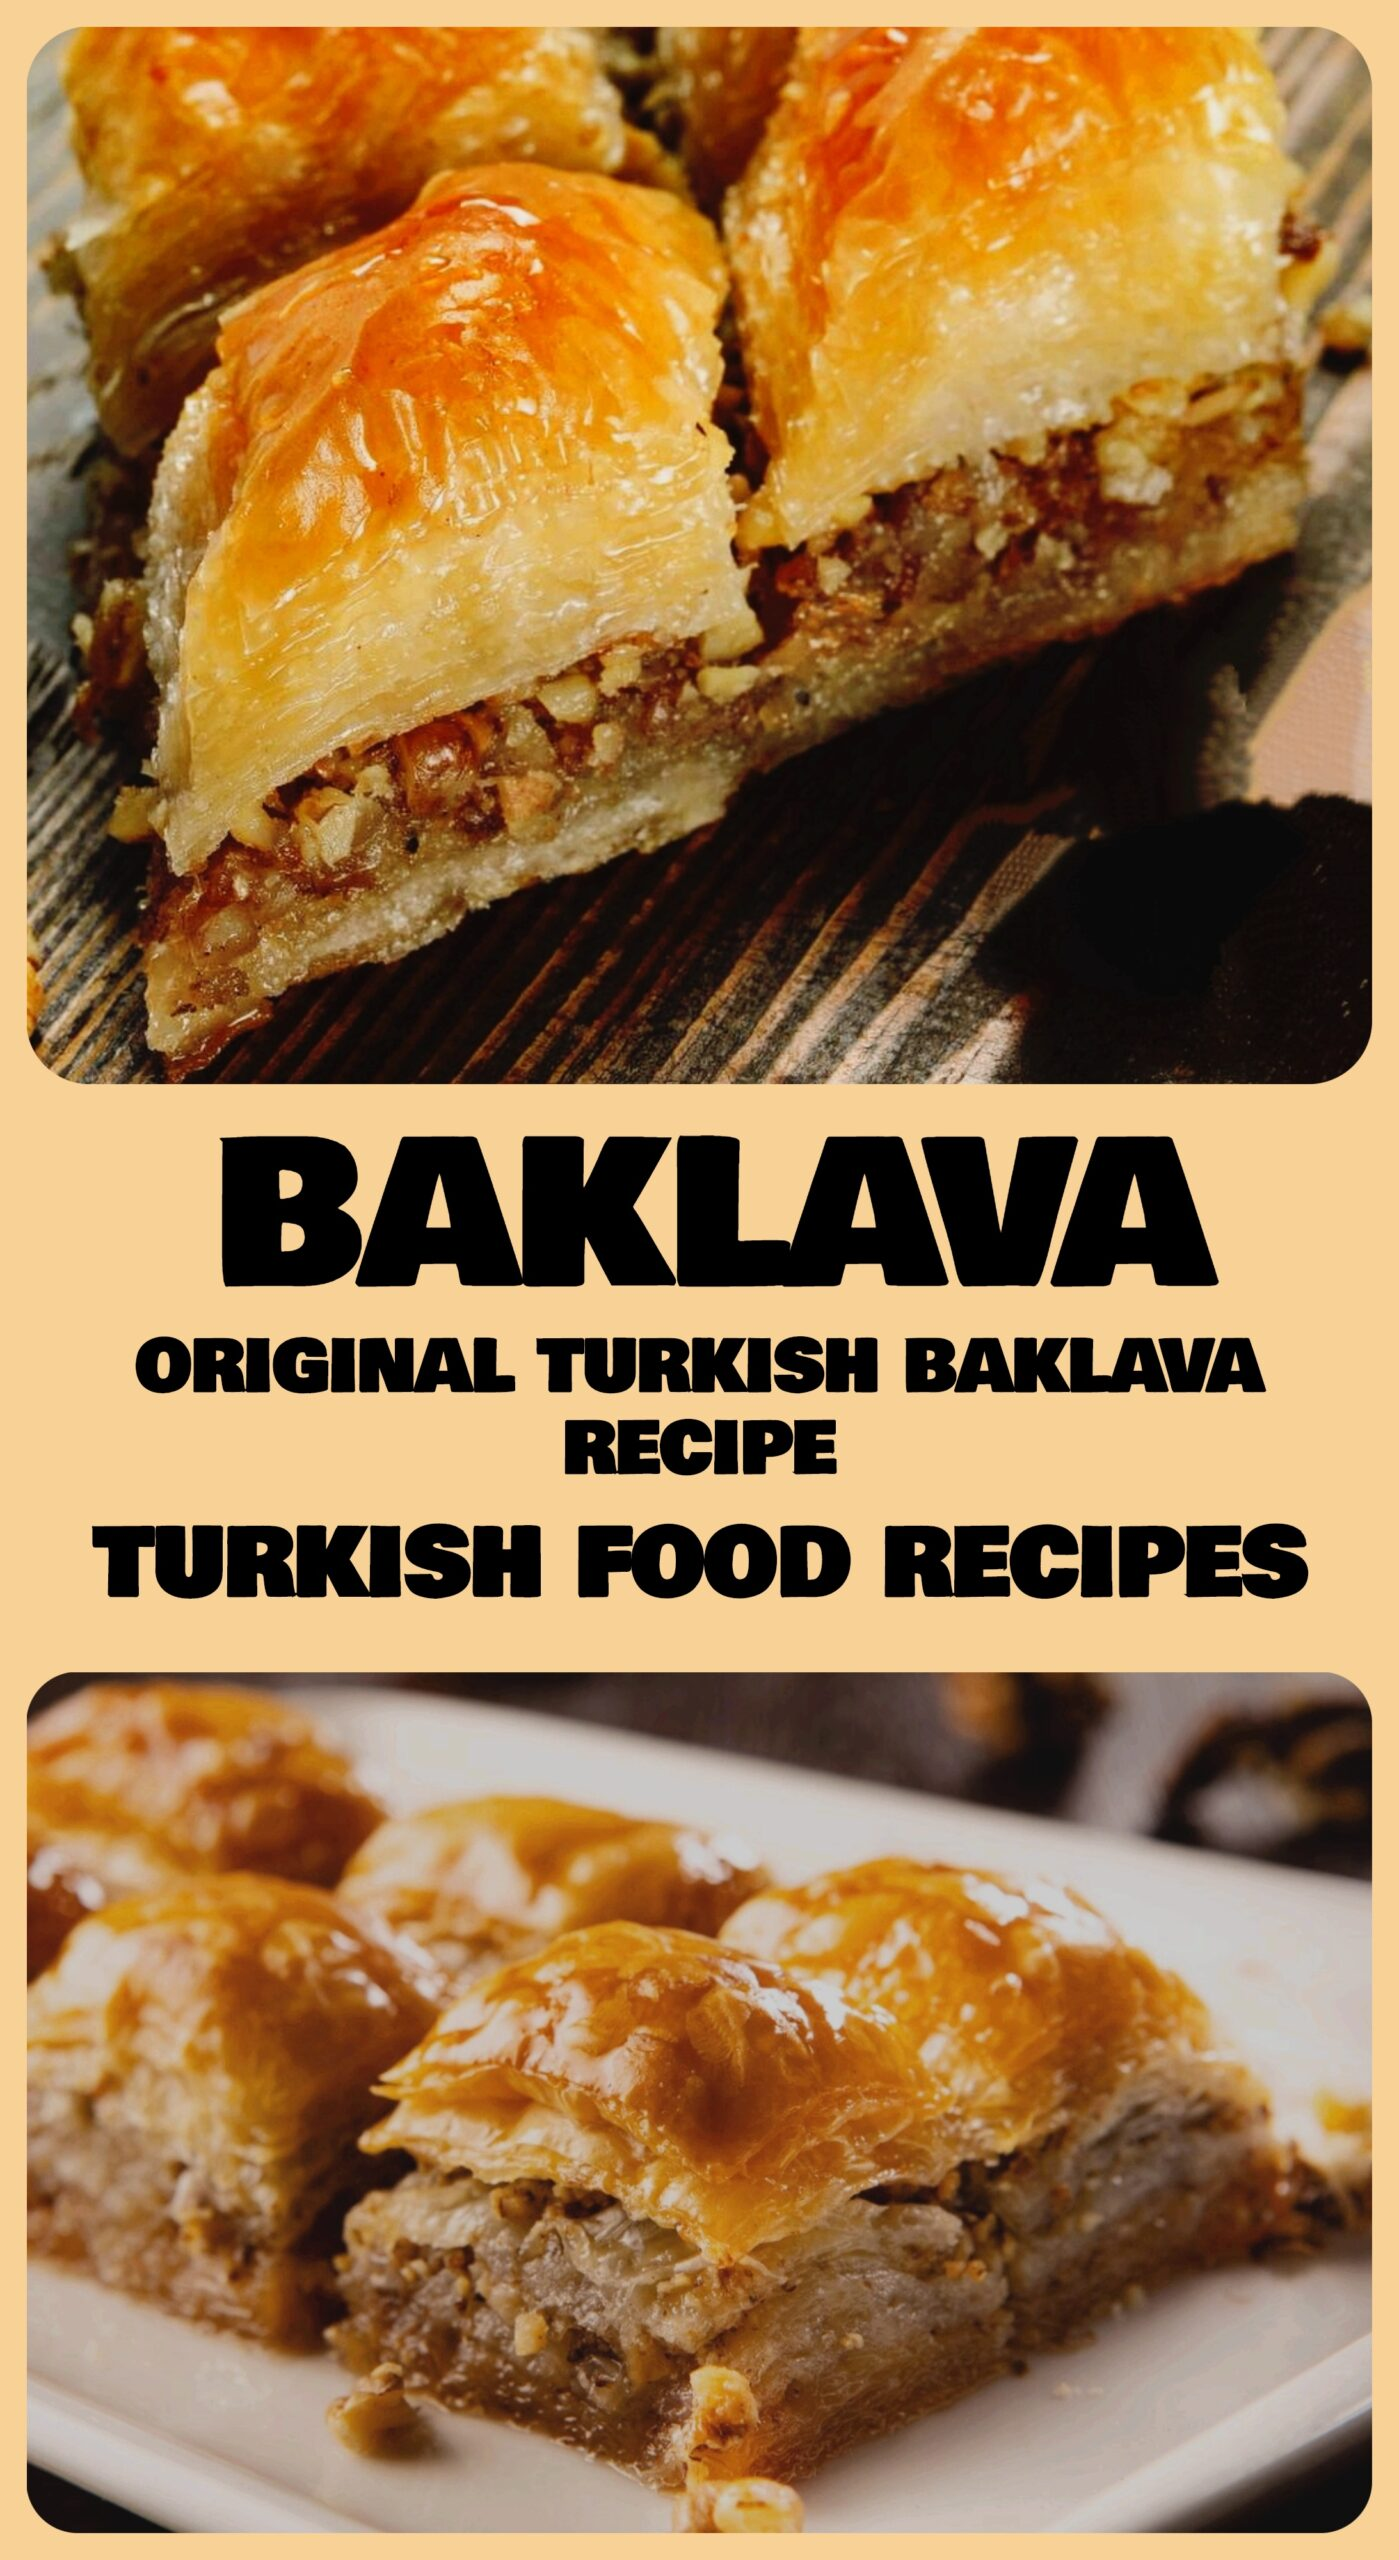 Baklava Original Turkish Baklava Recipe